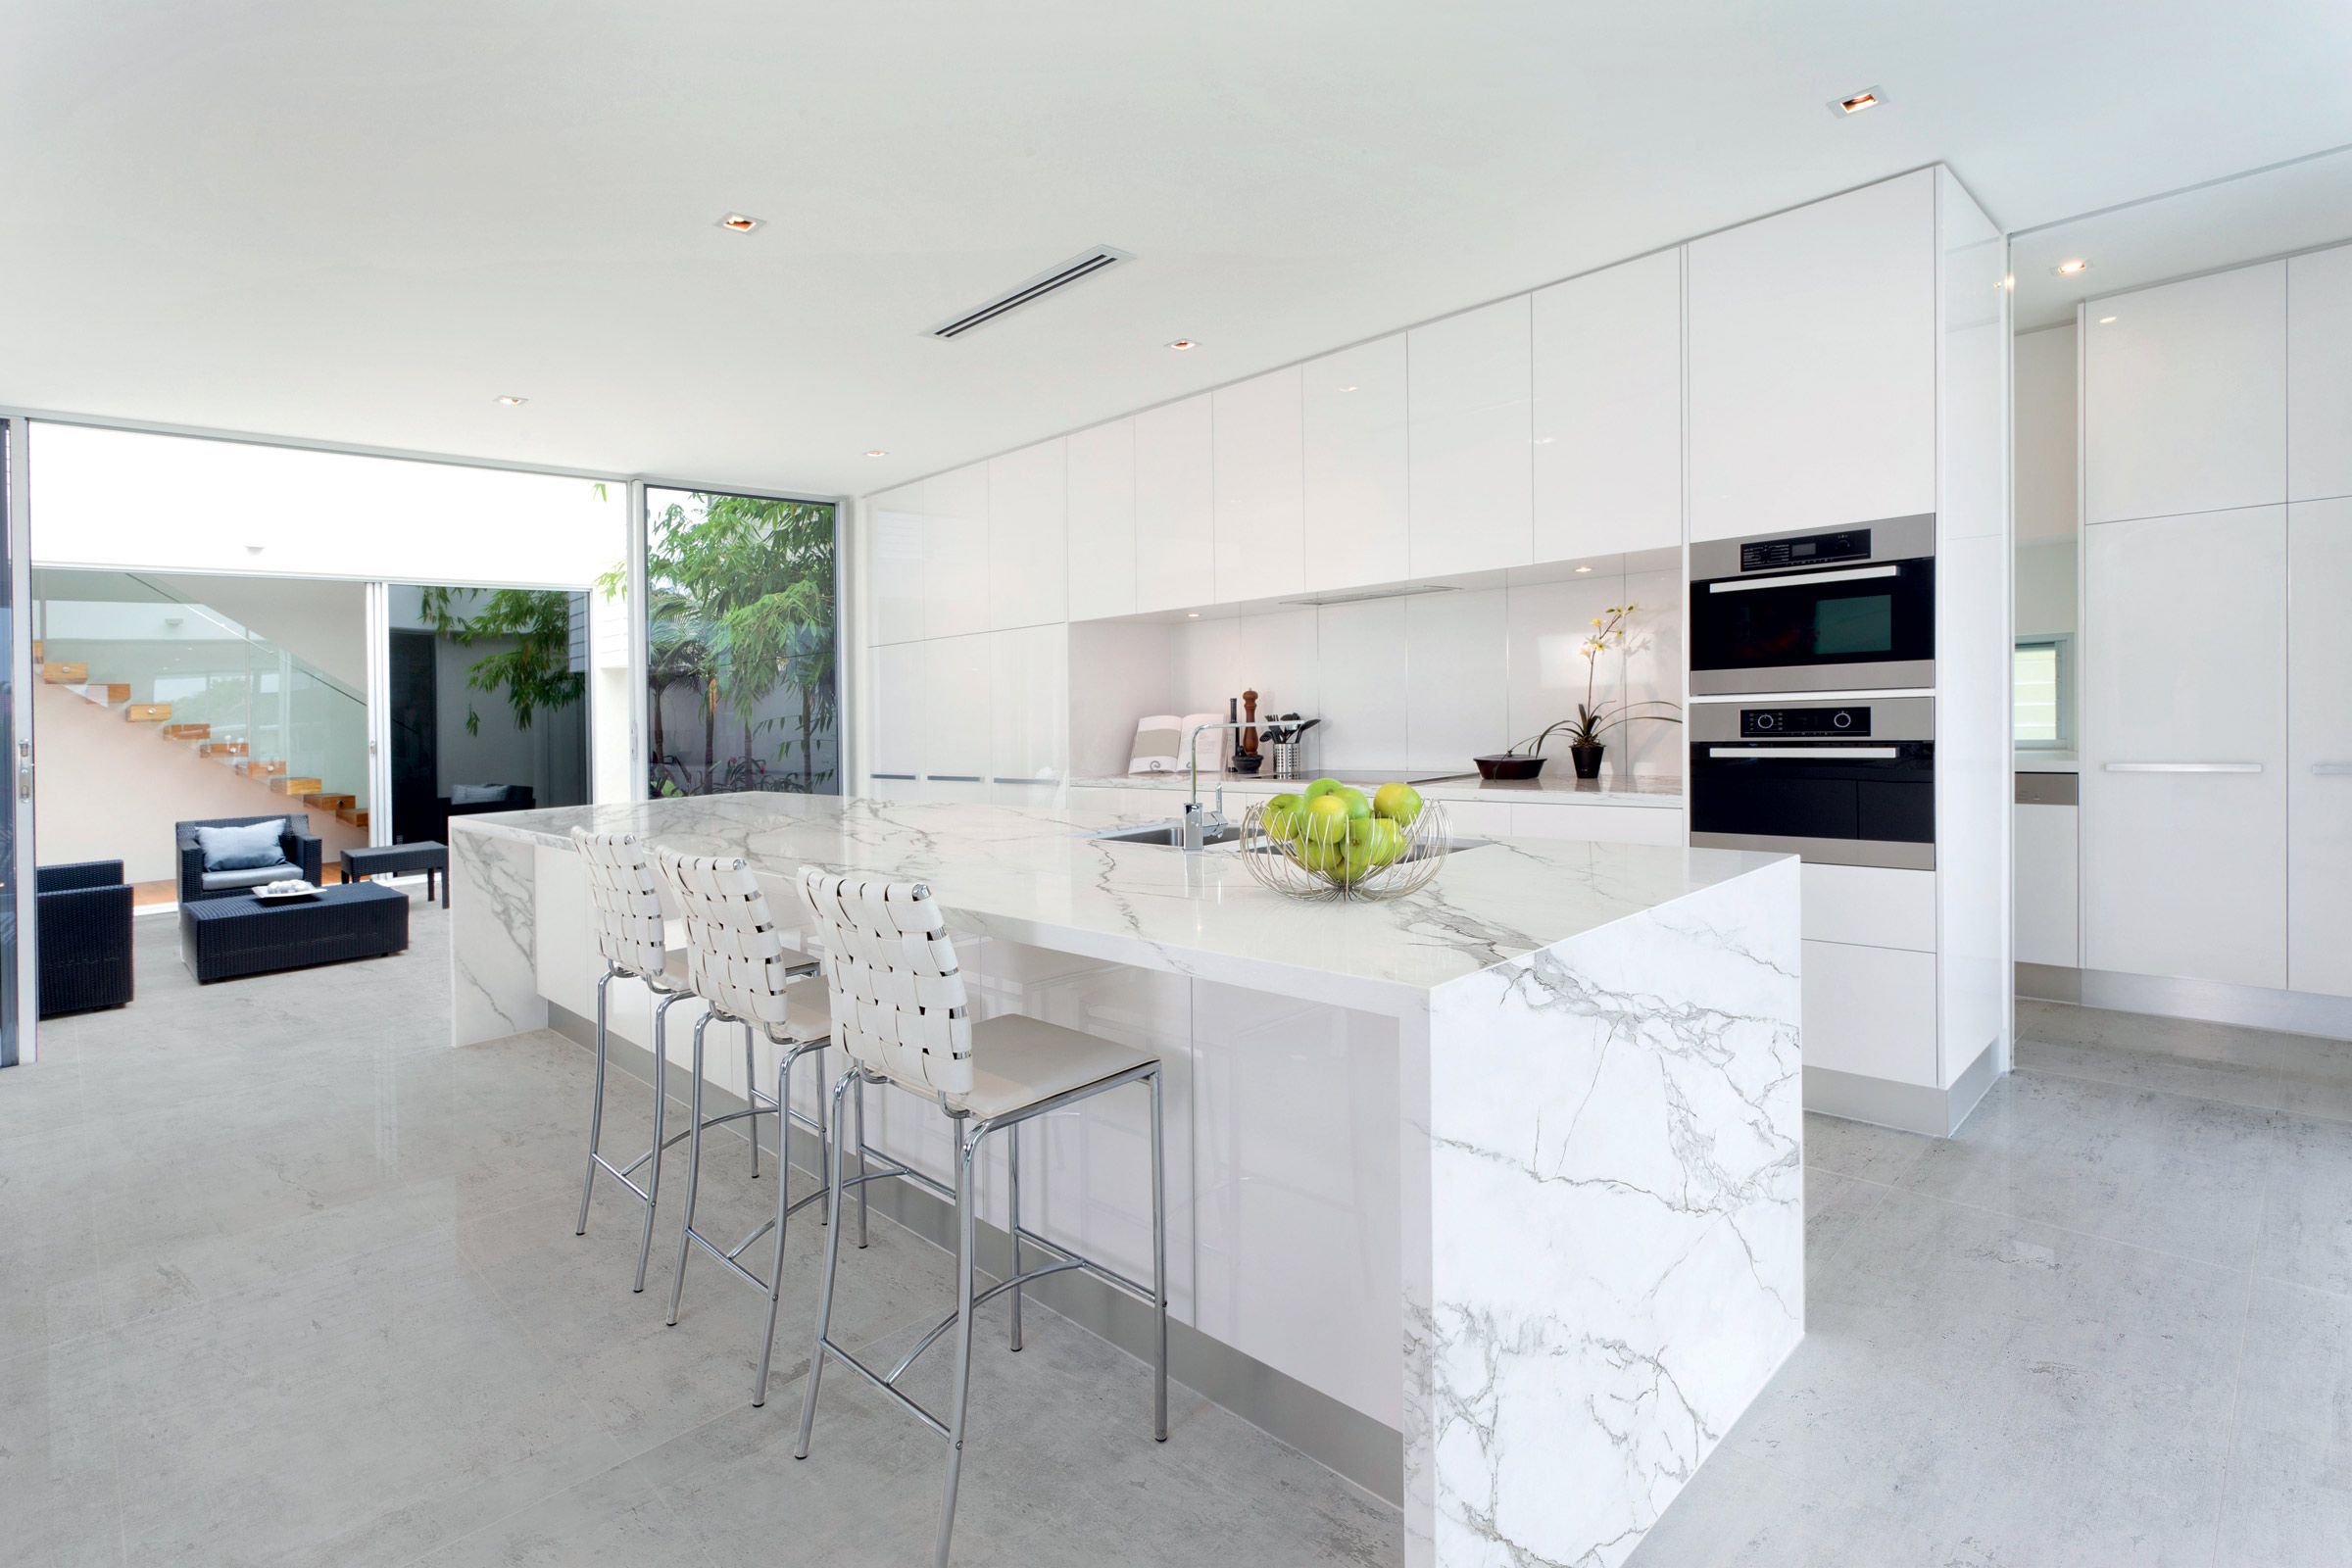 neolith-polished-calacatta-island-counter-top-waterfall (2400